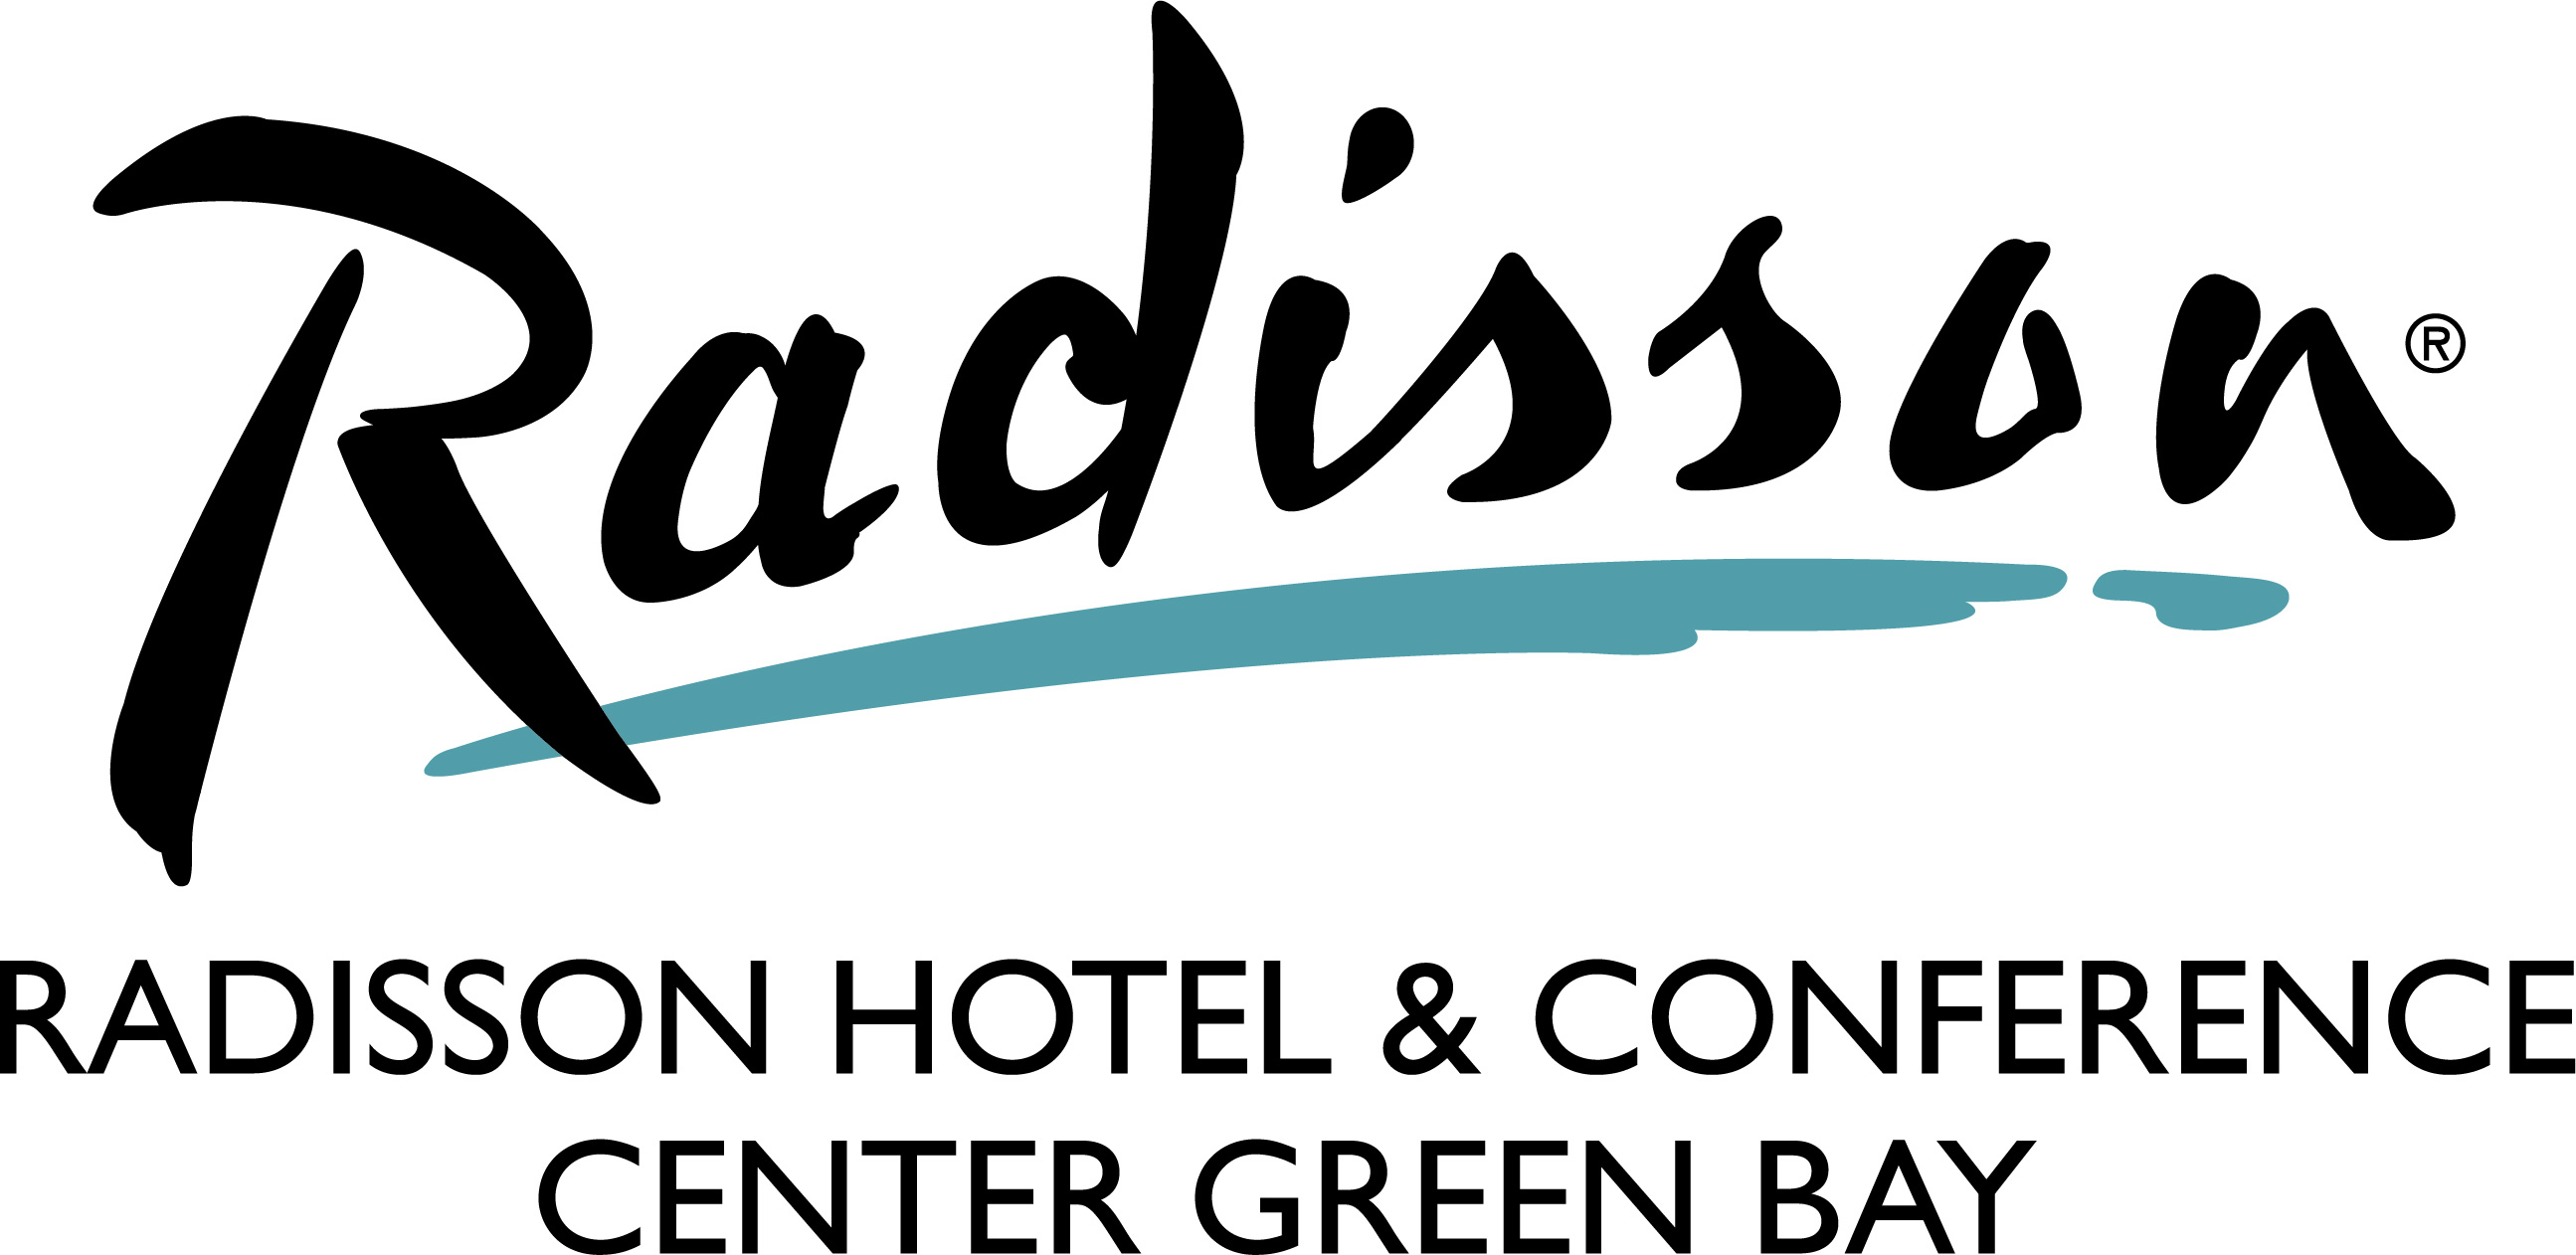 Logo for Radisson Hotel & Conference Center Green Bay